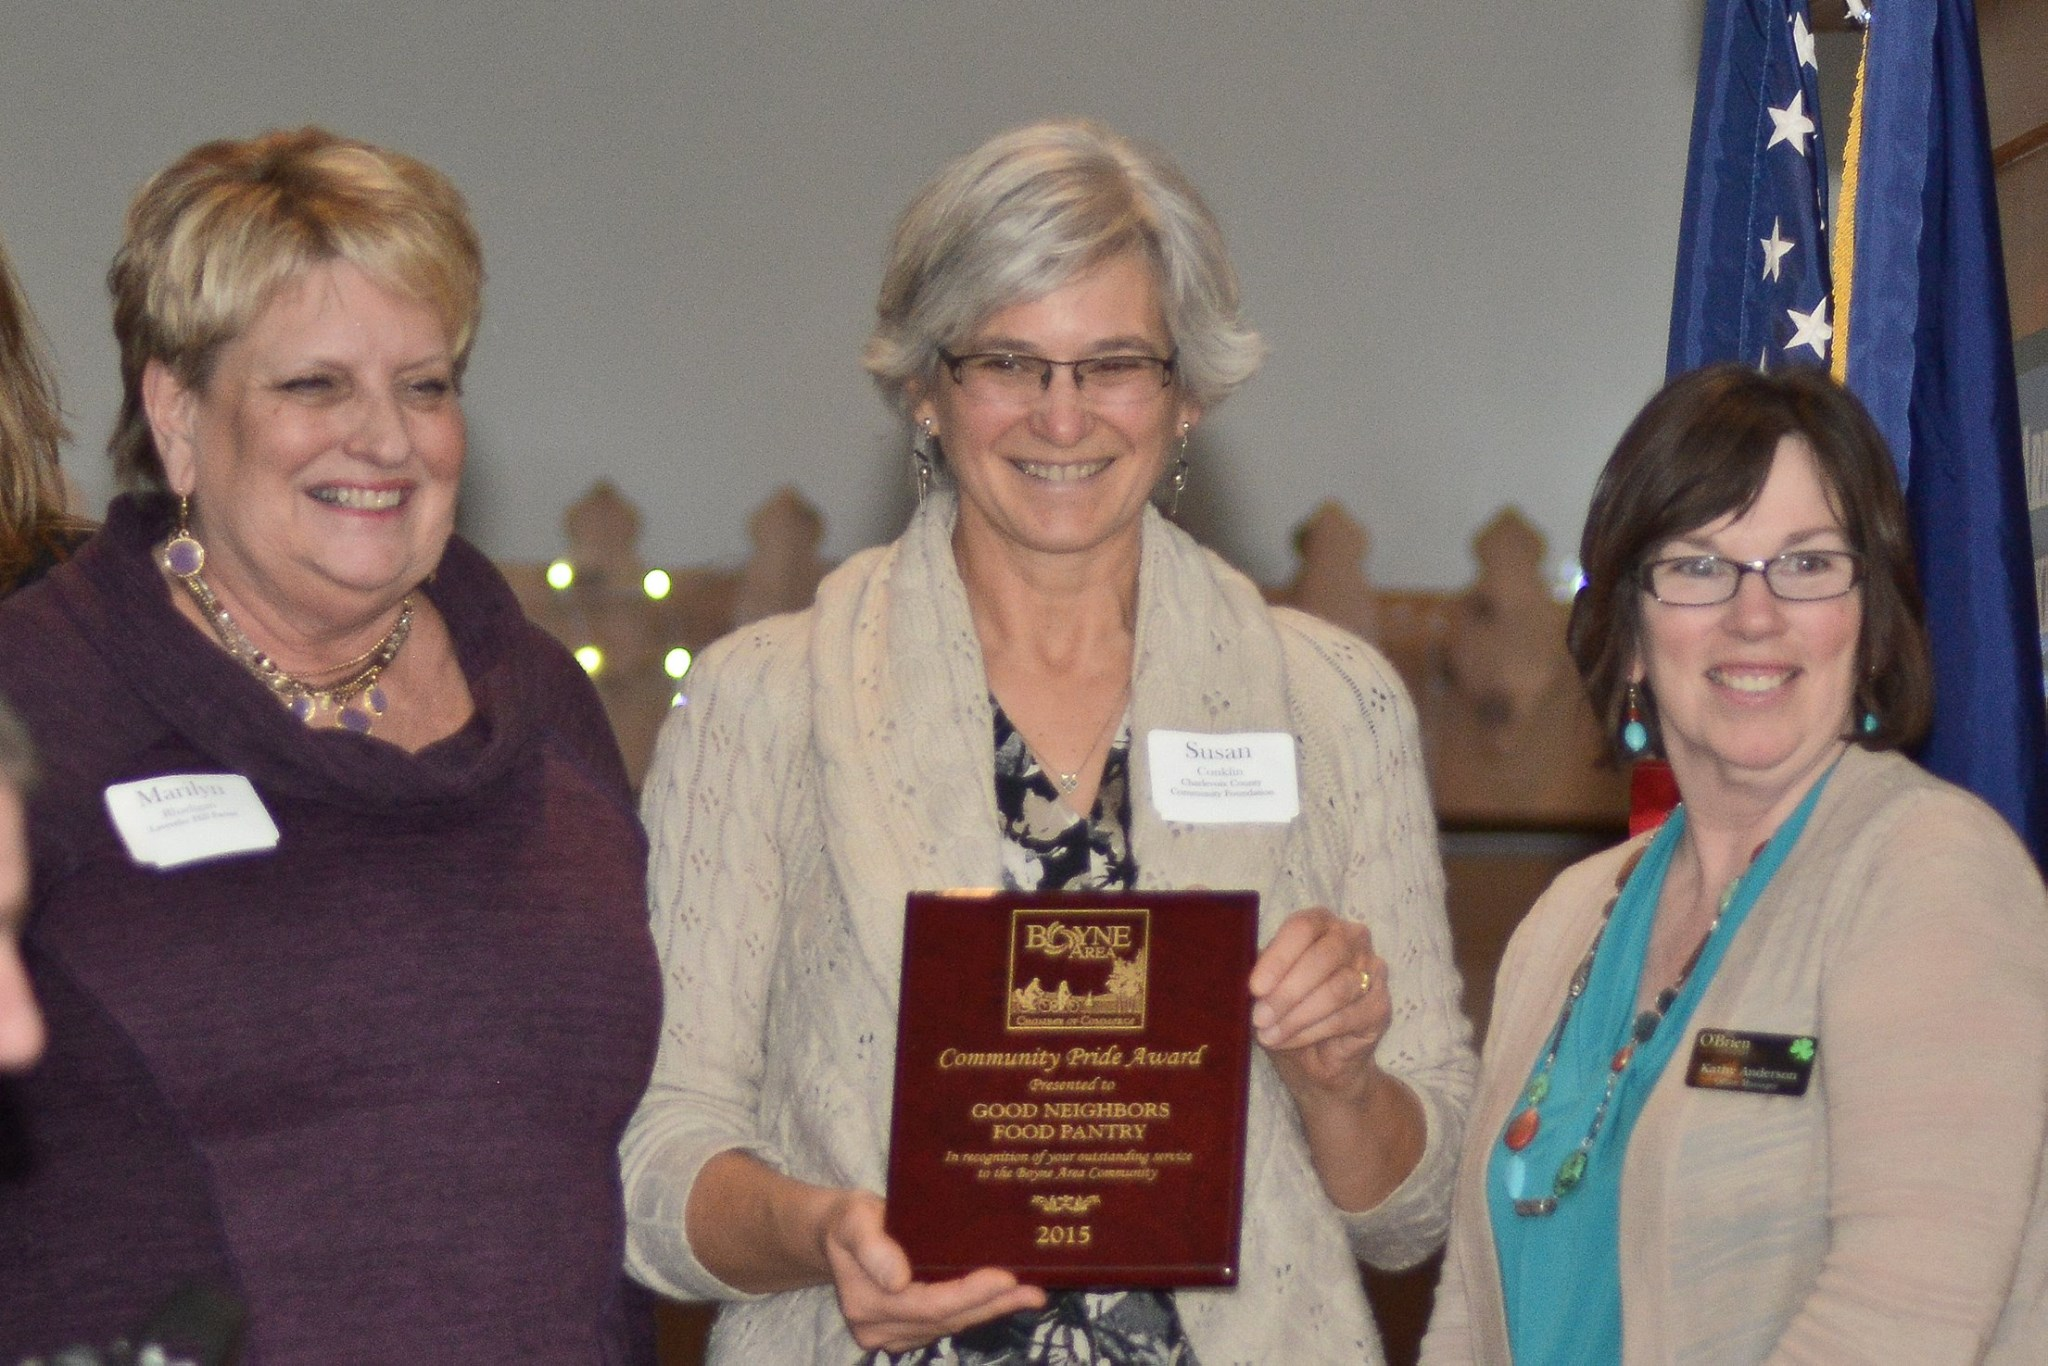 Three women holding Community Pride Award